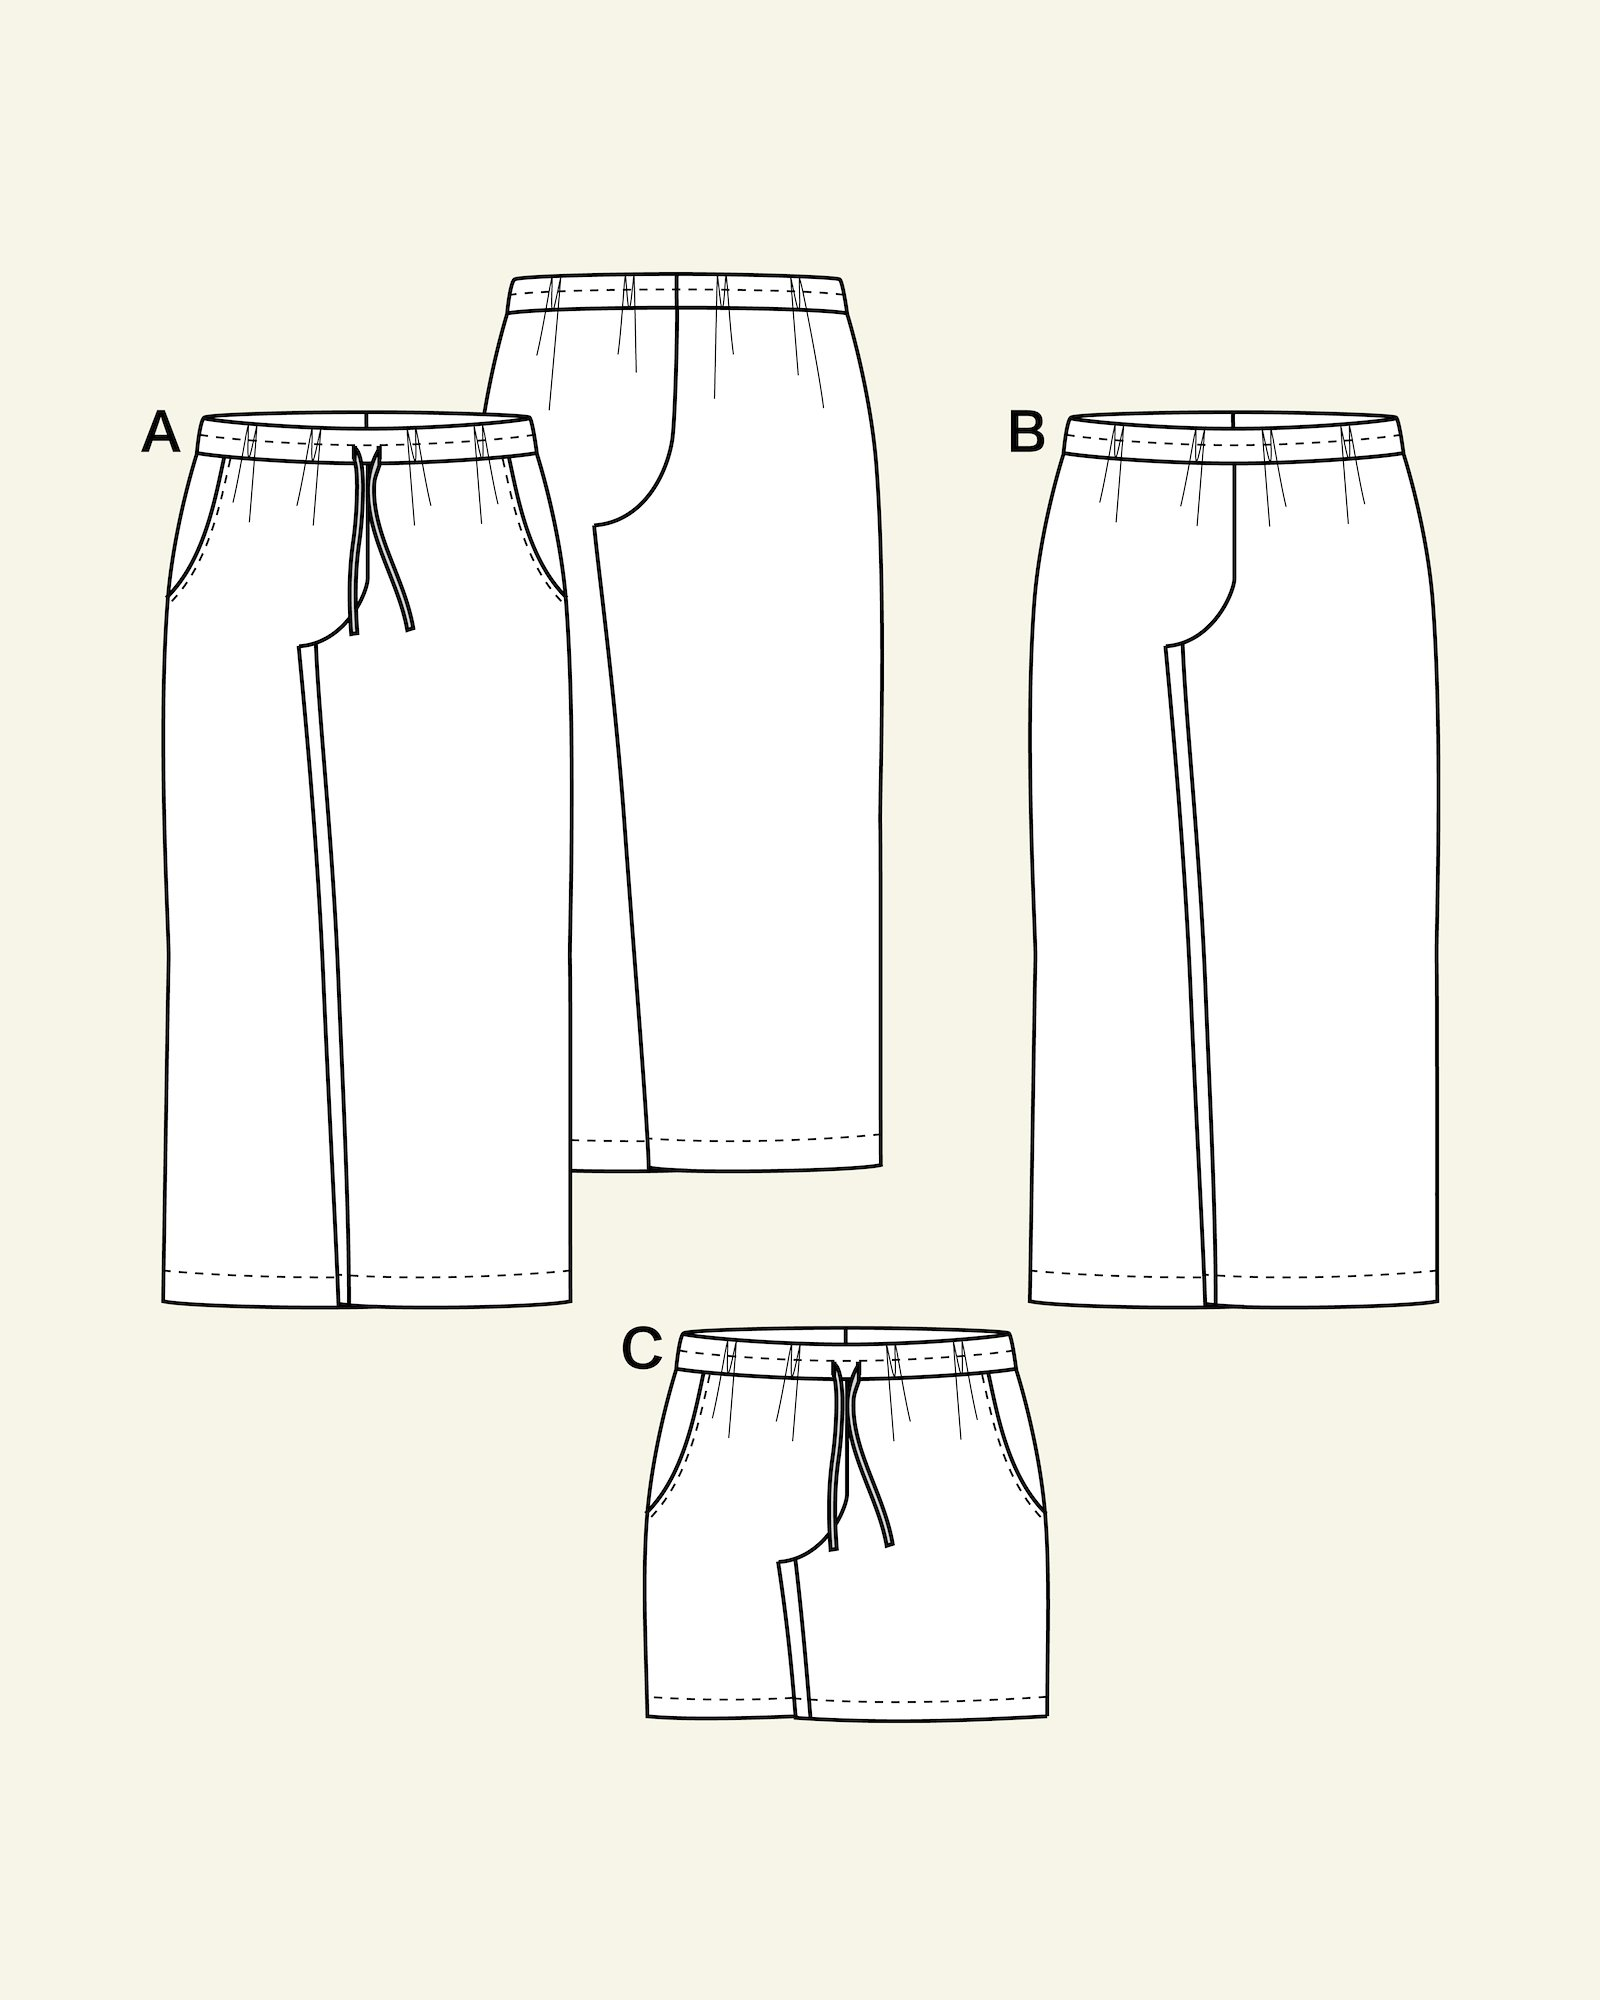 Wide trousers and shorts with pocekts